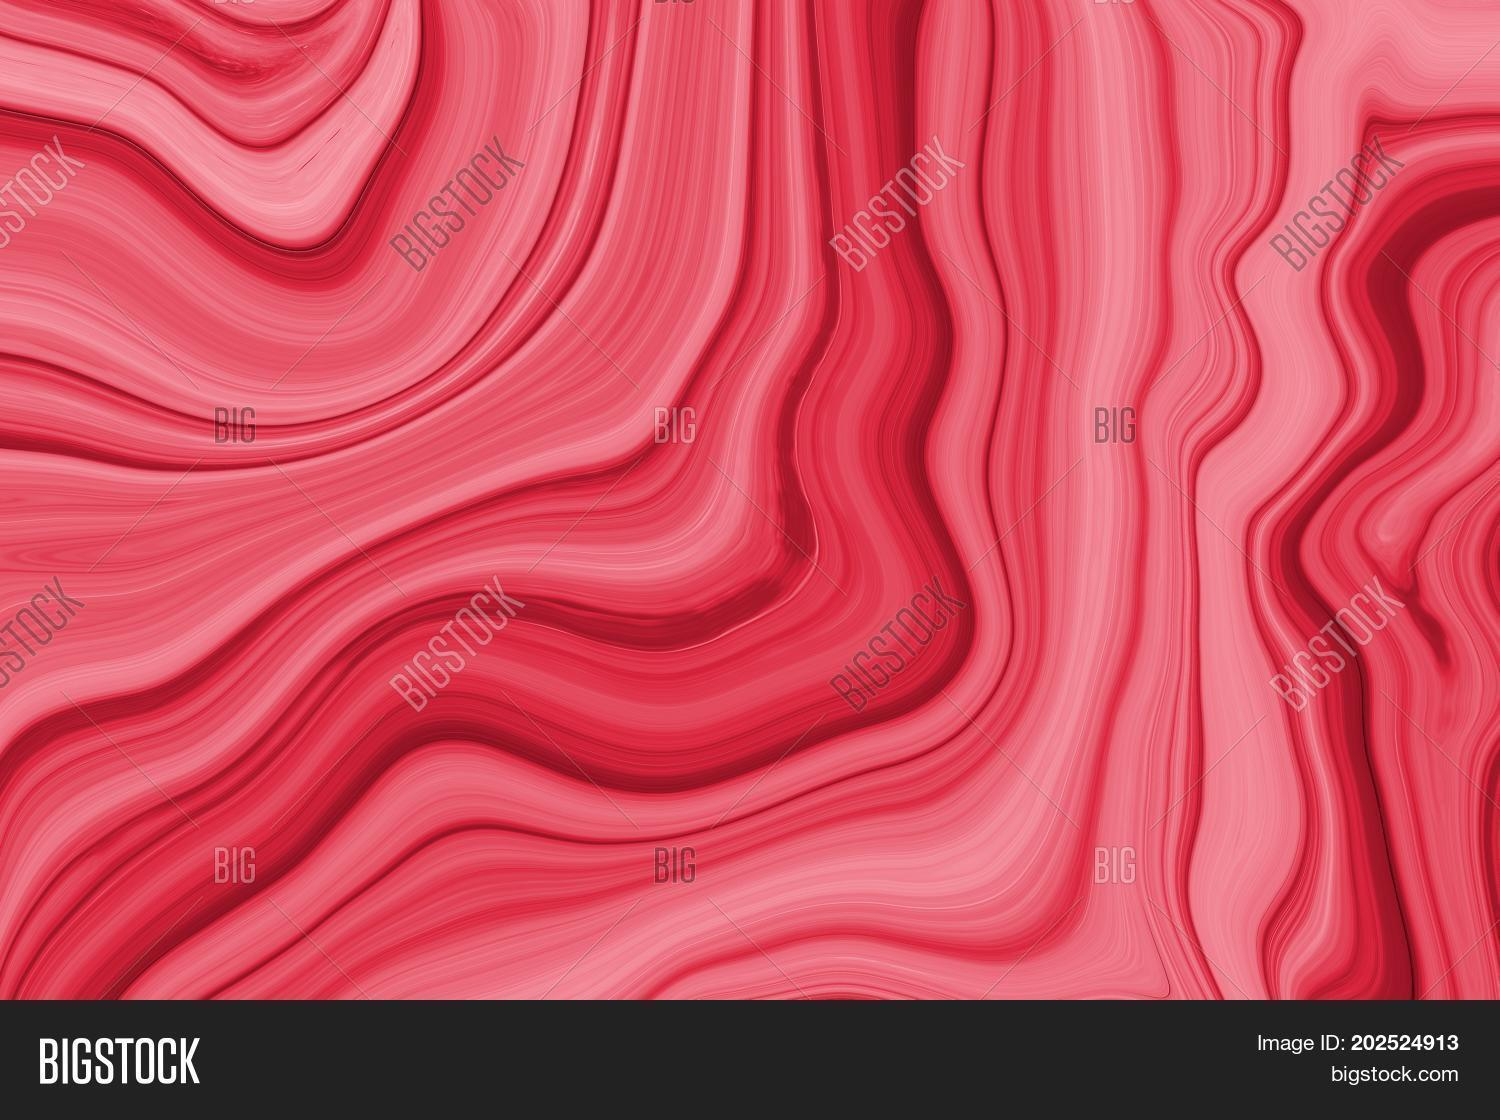 Marble Ink Colorful Image Photo Free Trial Bigstock